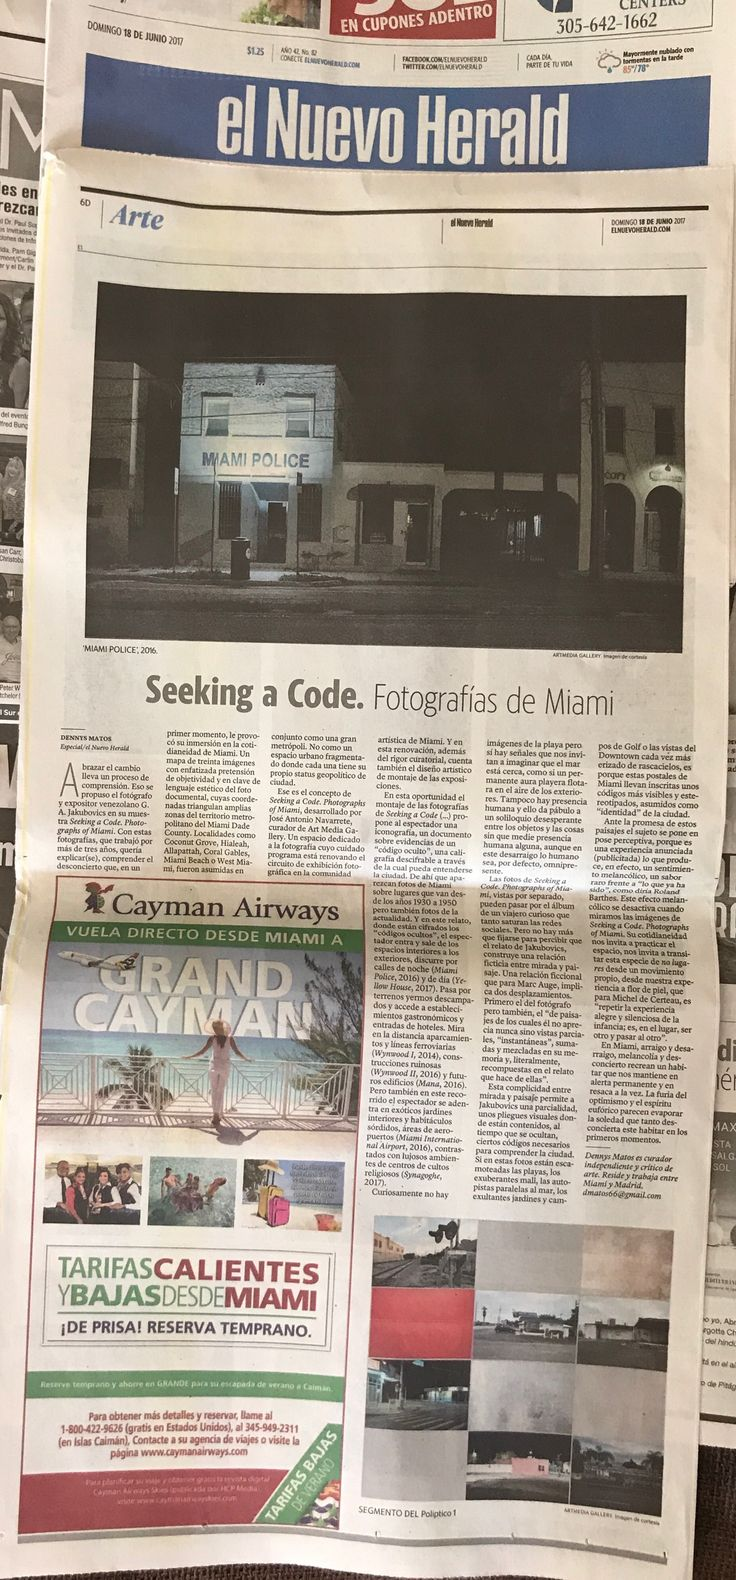 Today Sunday June 18th. We are in the News!  Thank you to El Nuevo Herald Miami and Dennys Matos for this amazing and beautiful review of our current art exhibition Seeking a Code #photographsofMiami by G.A. Jakubovics. You can enjoy us at artmediaGALLERY located at 2750 NW 3rd Ave, suite 12, #Miami FL 33127. phone: 3053188306.  #artmediaGALLERY #GadyAlroy #SeekingaCode #ElNuevoHeraldMiami #DennysMatos #Wynwood  http://www.elnuevoherald.com/vivir-mejor/artes-letras/article156350259.html